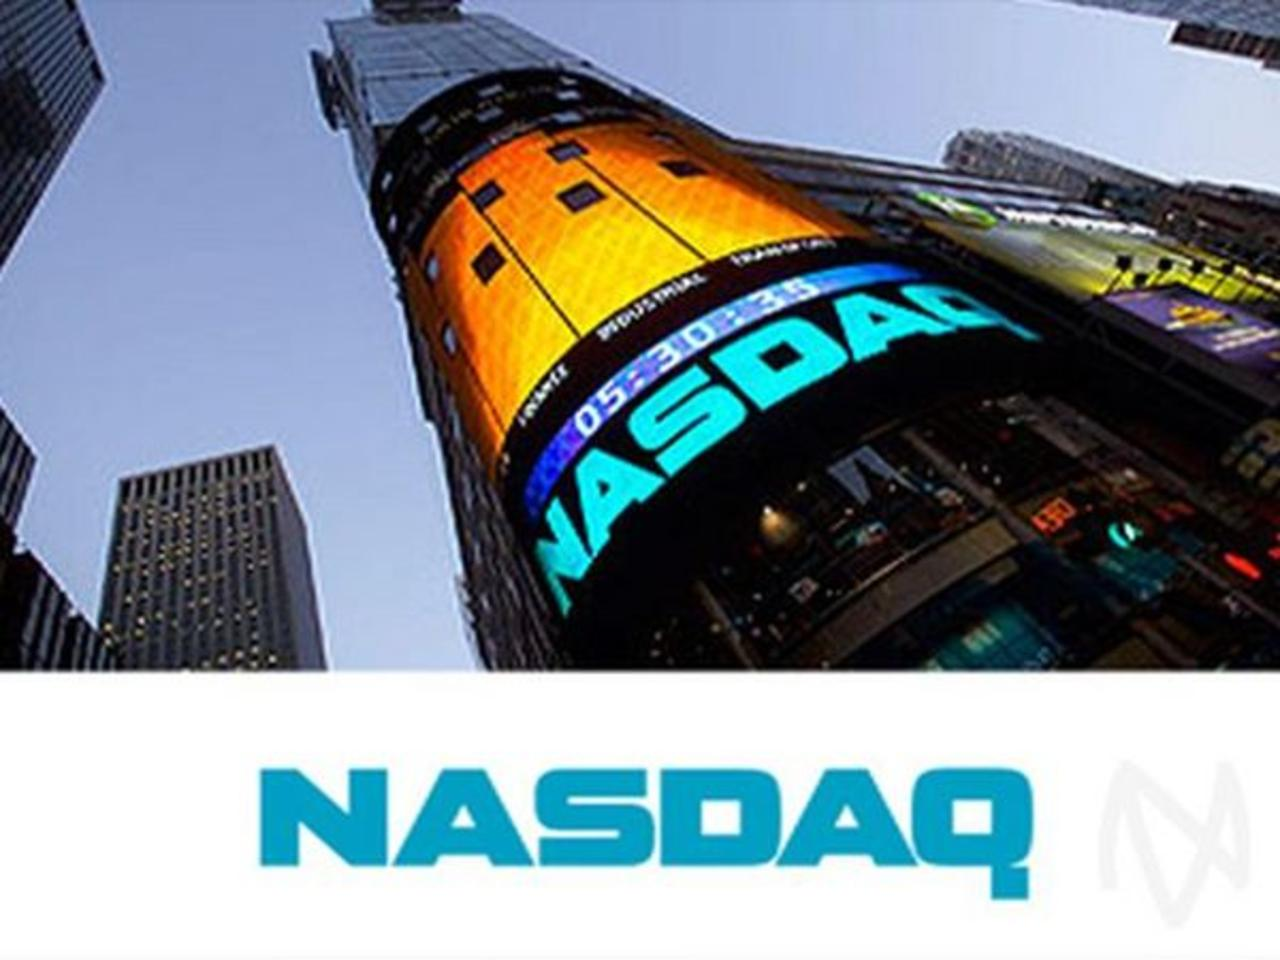 Nasdaq 100 Movers: SWKS, MRNA